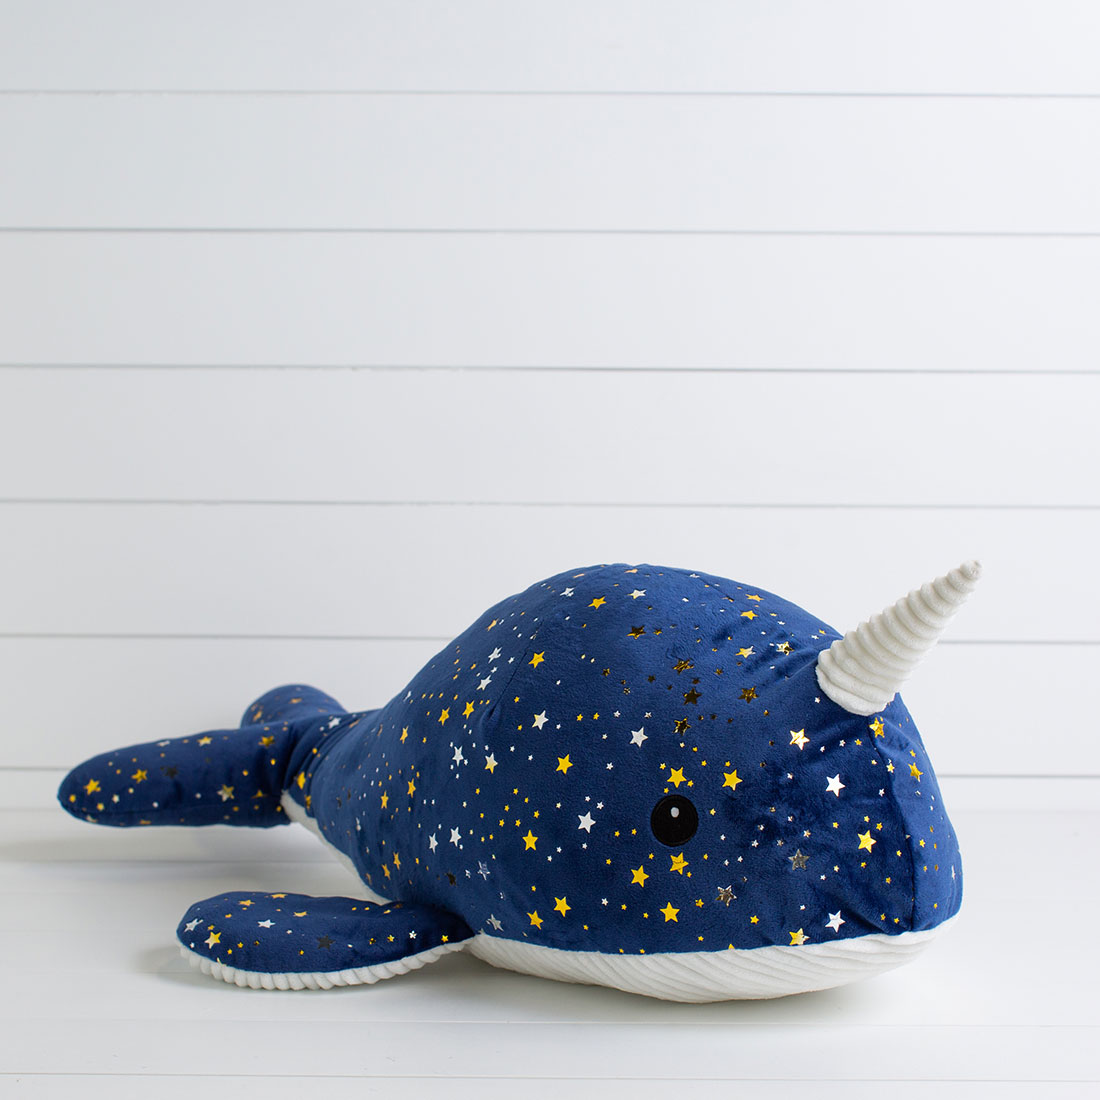 Bubles Wall Plush Narwhal Toys Cute Stuffed Fish Doll Cartton Whale Plush Pillow Kids Toys Christmas Birthday Gift For Children Buy Now Toys & Hobbies Dolls & Stuffed Toys